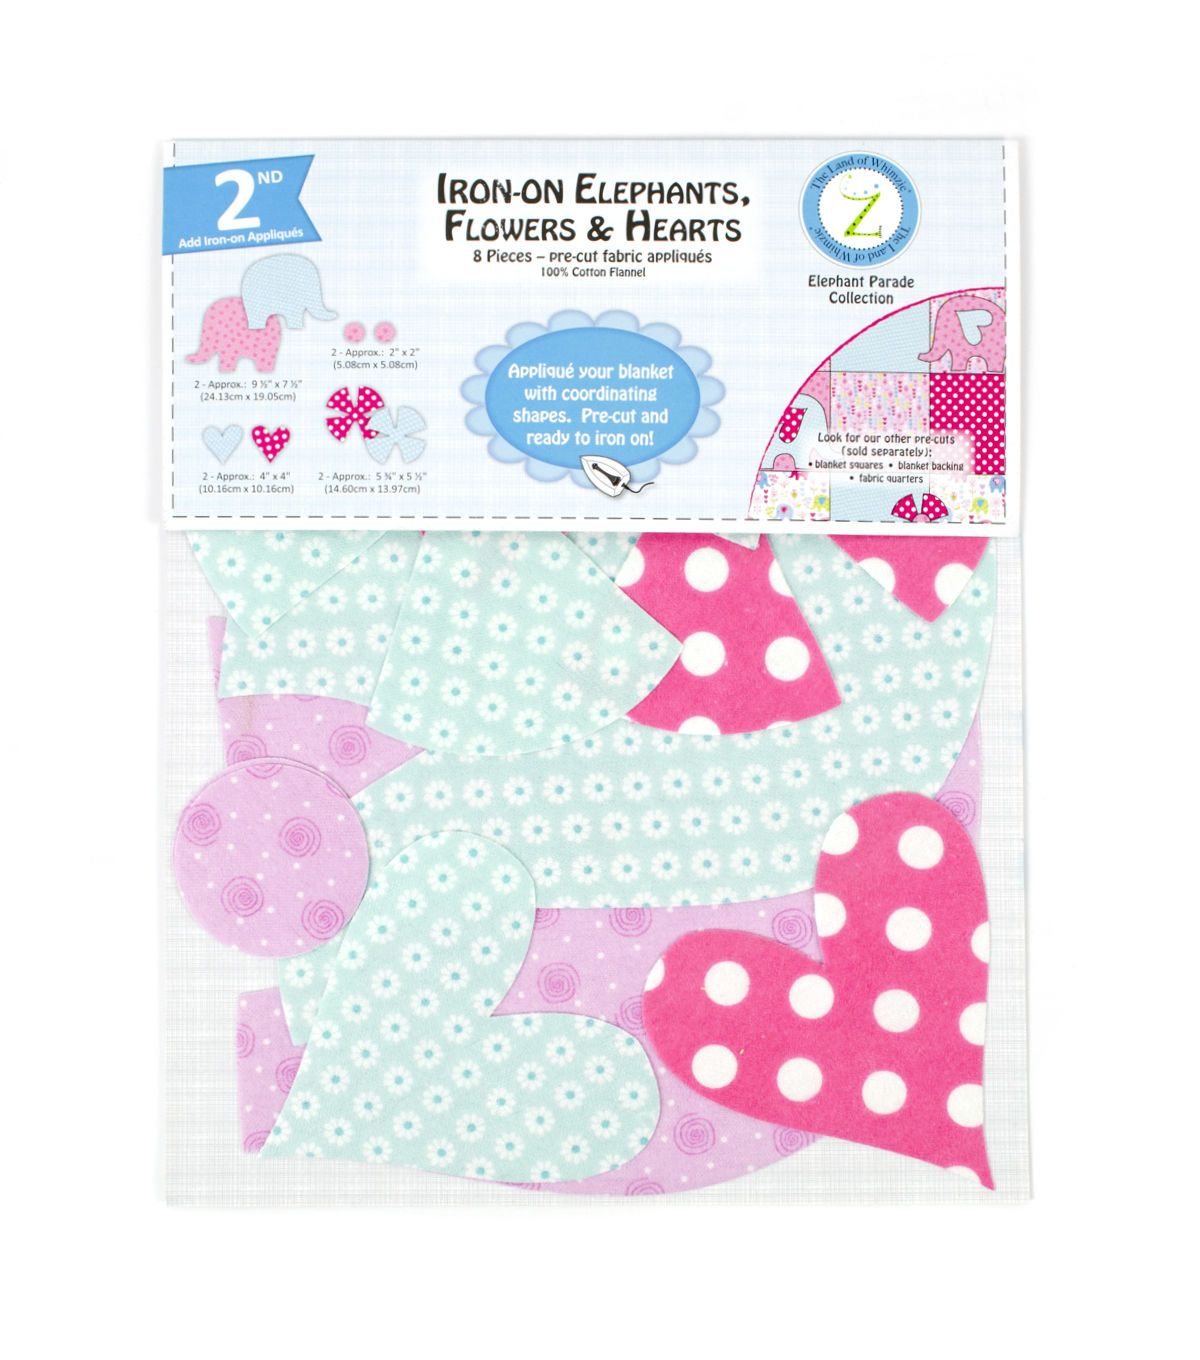 Land of Whimzie Elephant Parade Flannel IronOn Appliques